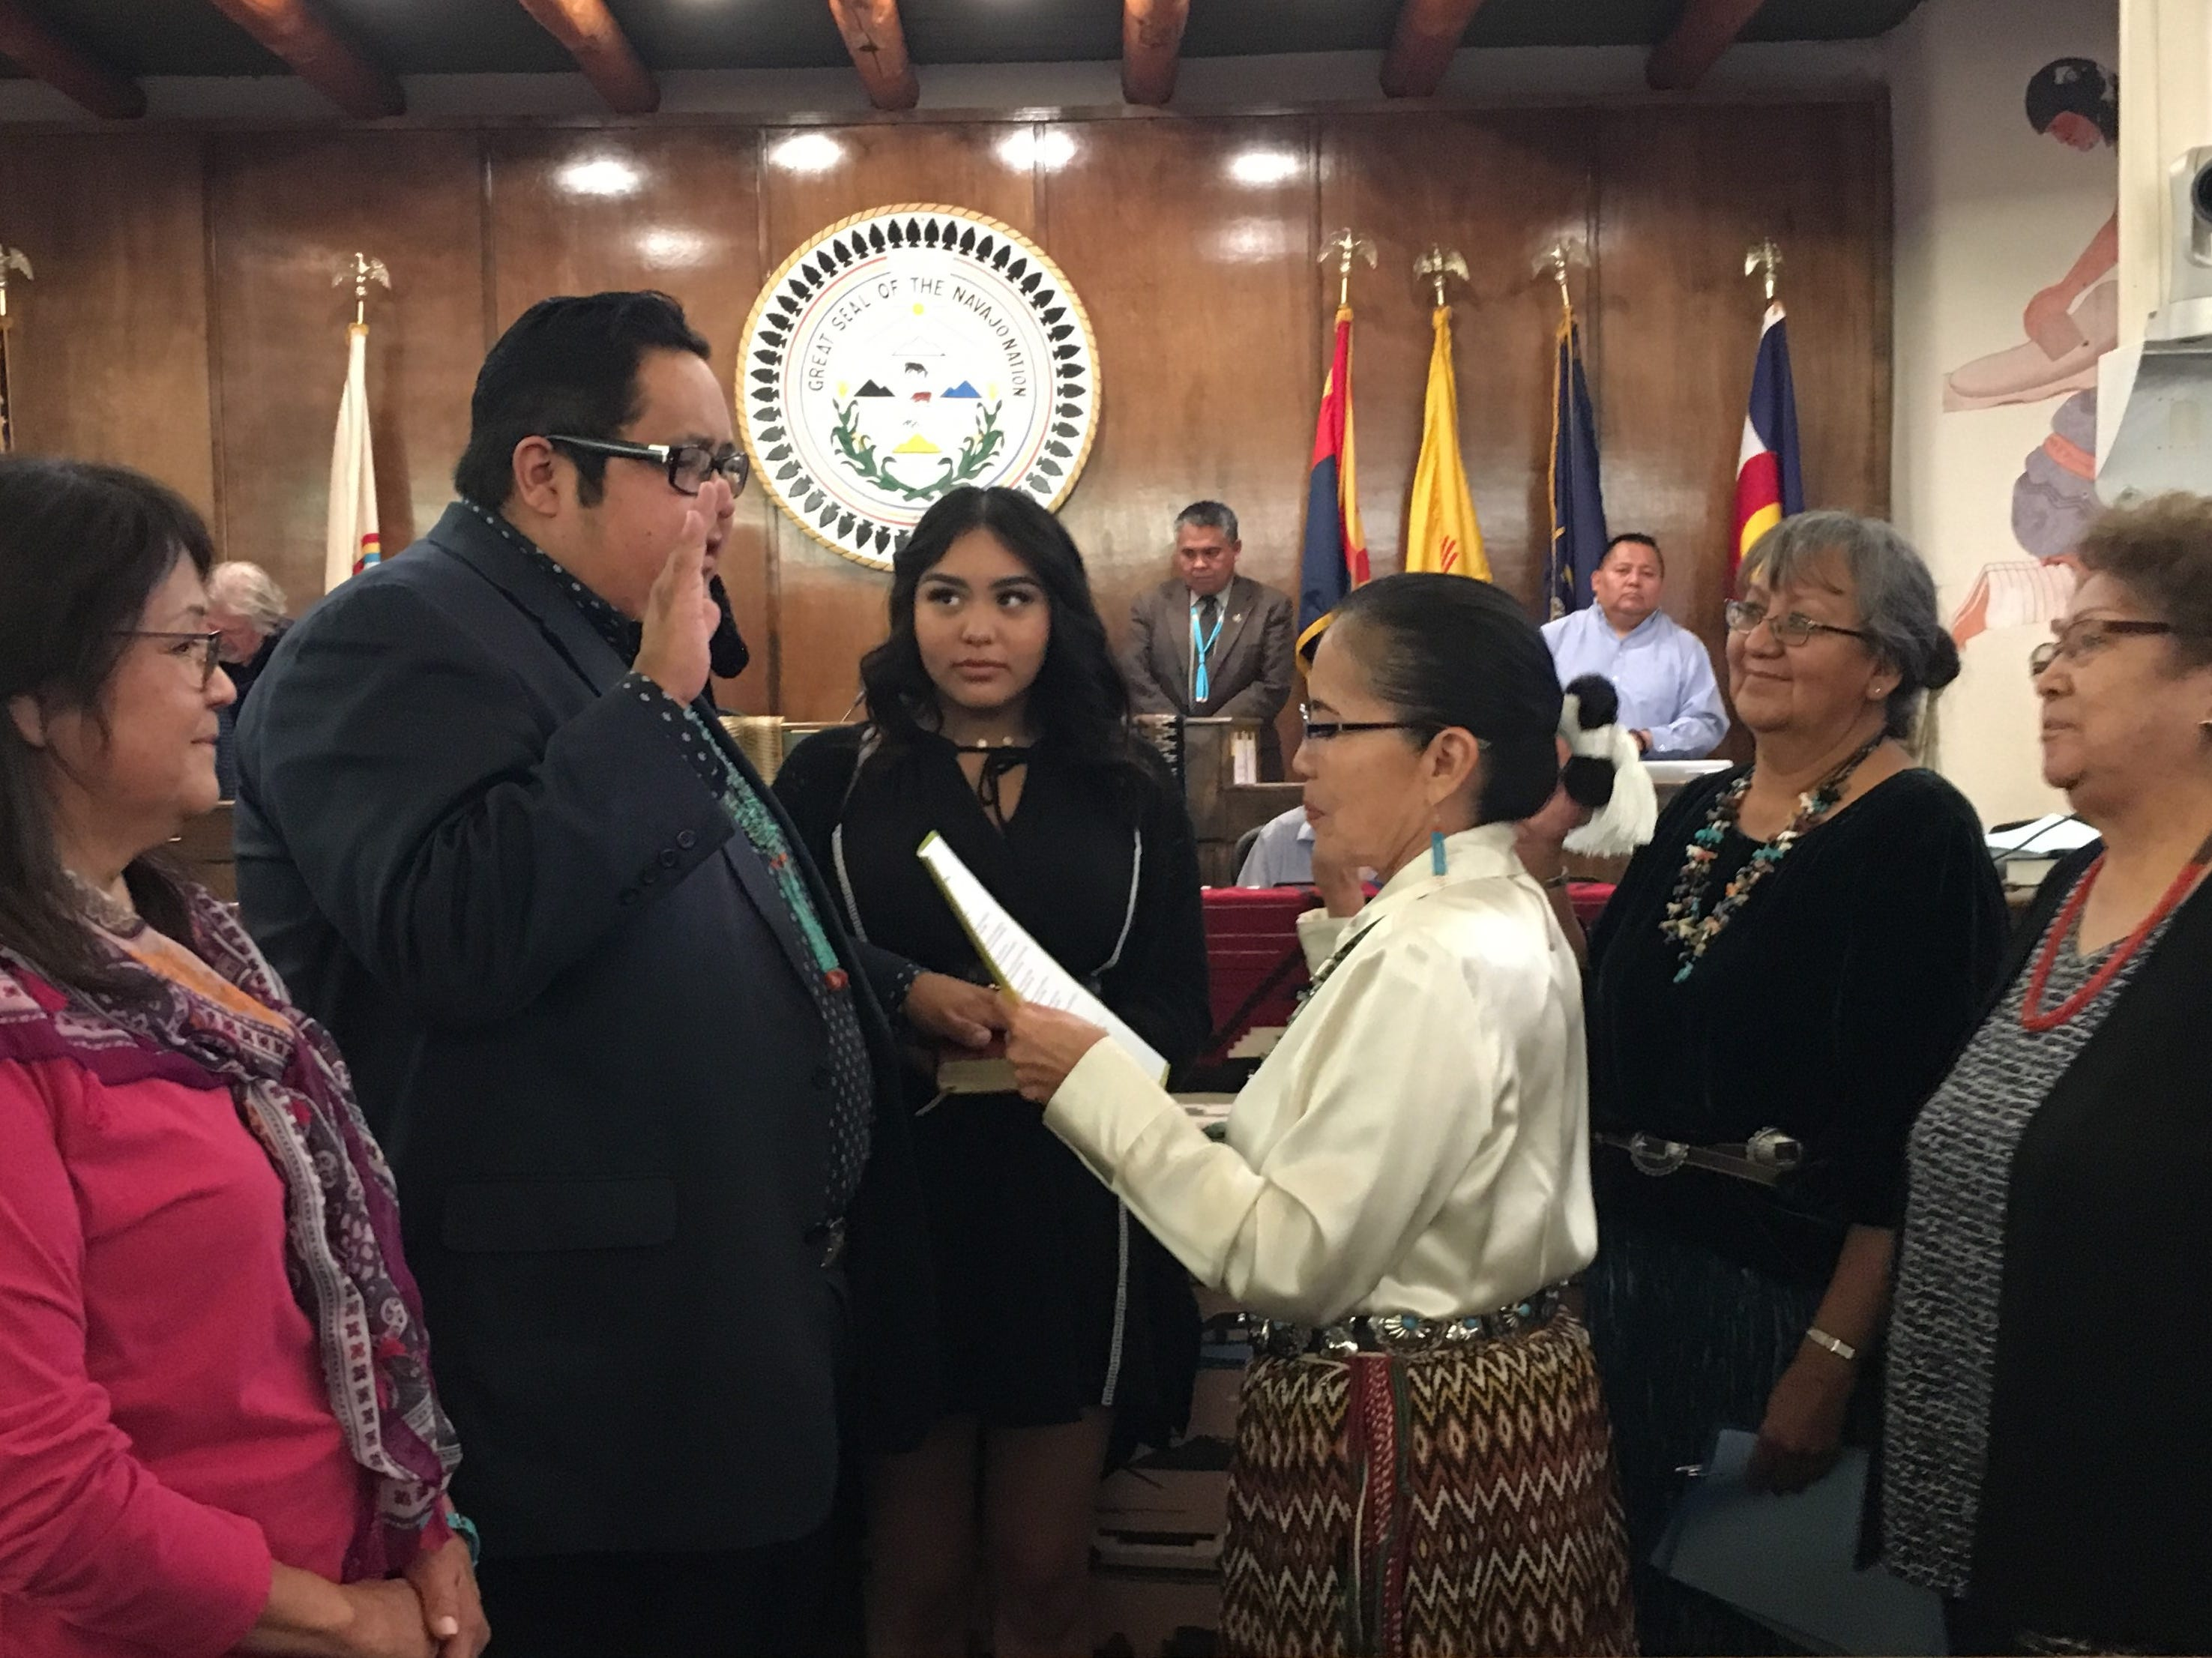 Delegate Seth Damon is sworn-in as speaker for the Navajo Nation Council on Monday at the council chamber in Window Rock, Ariz.